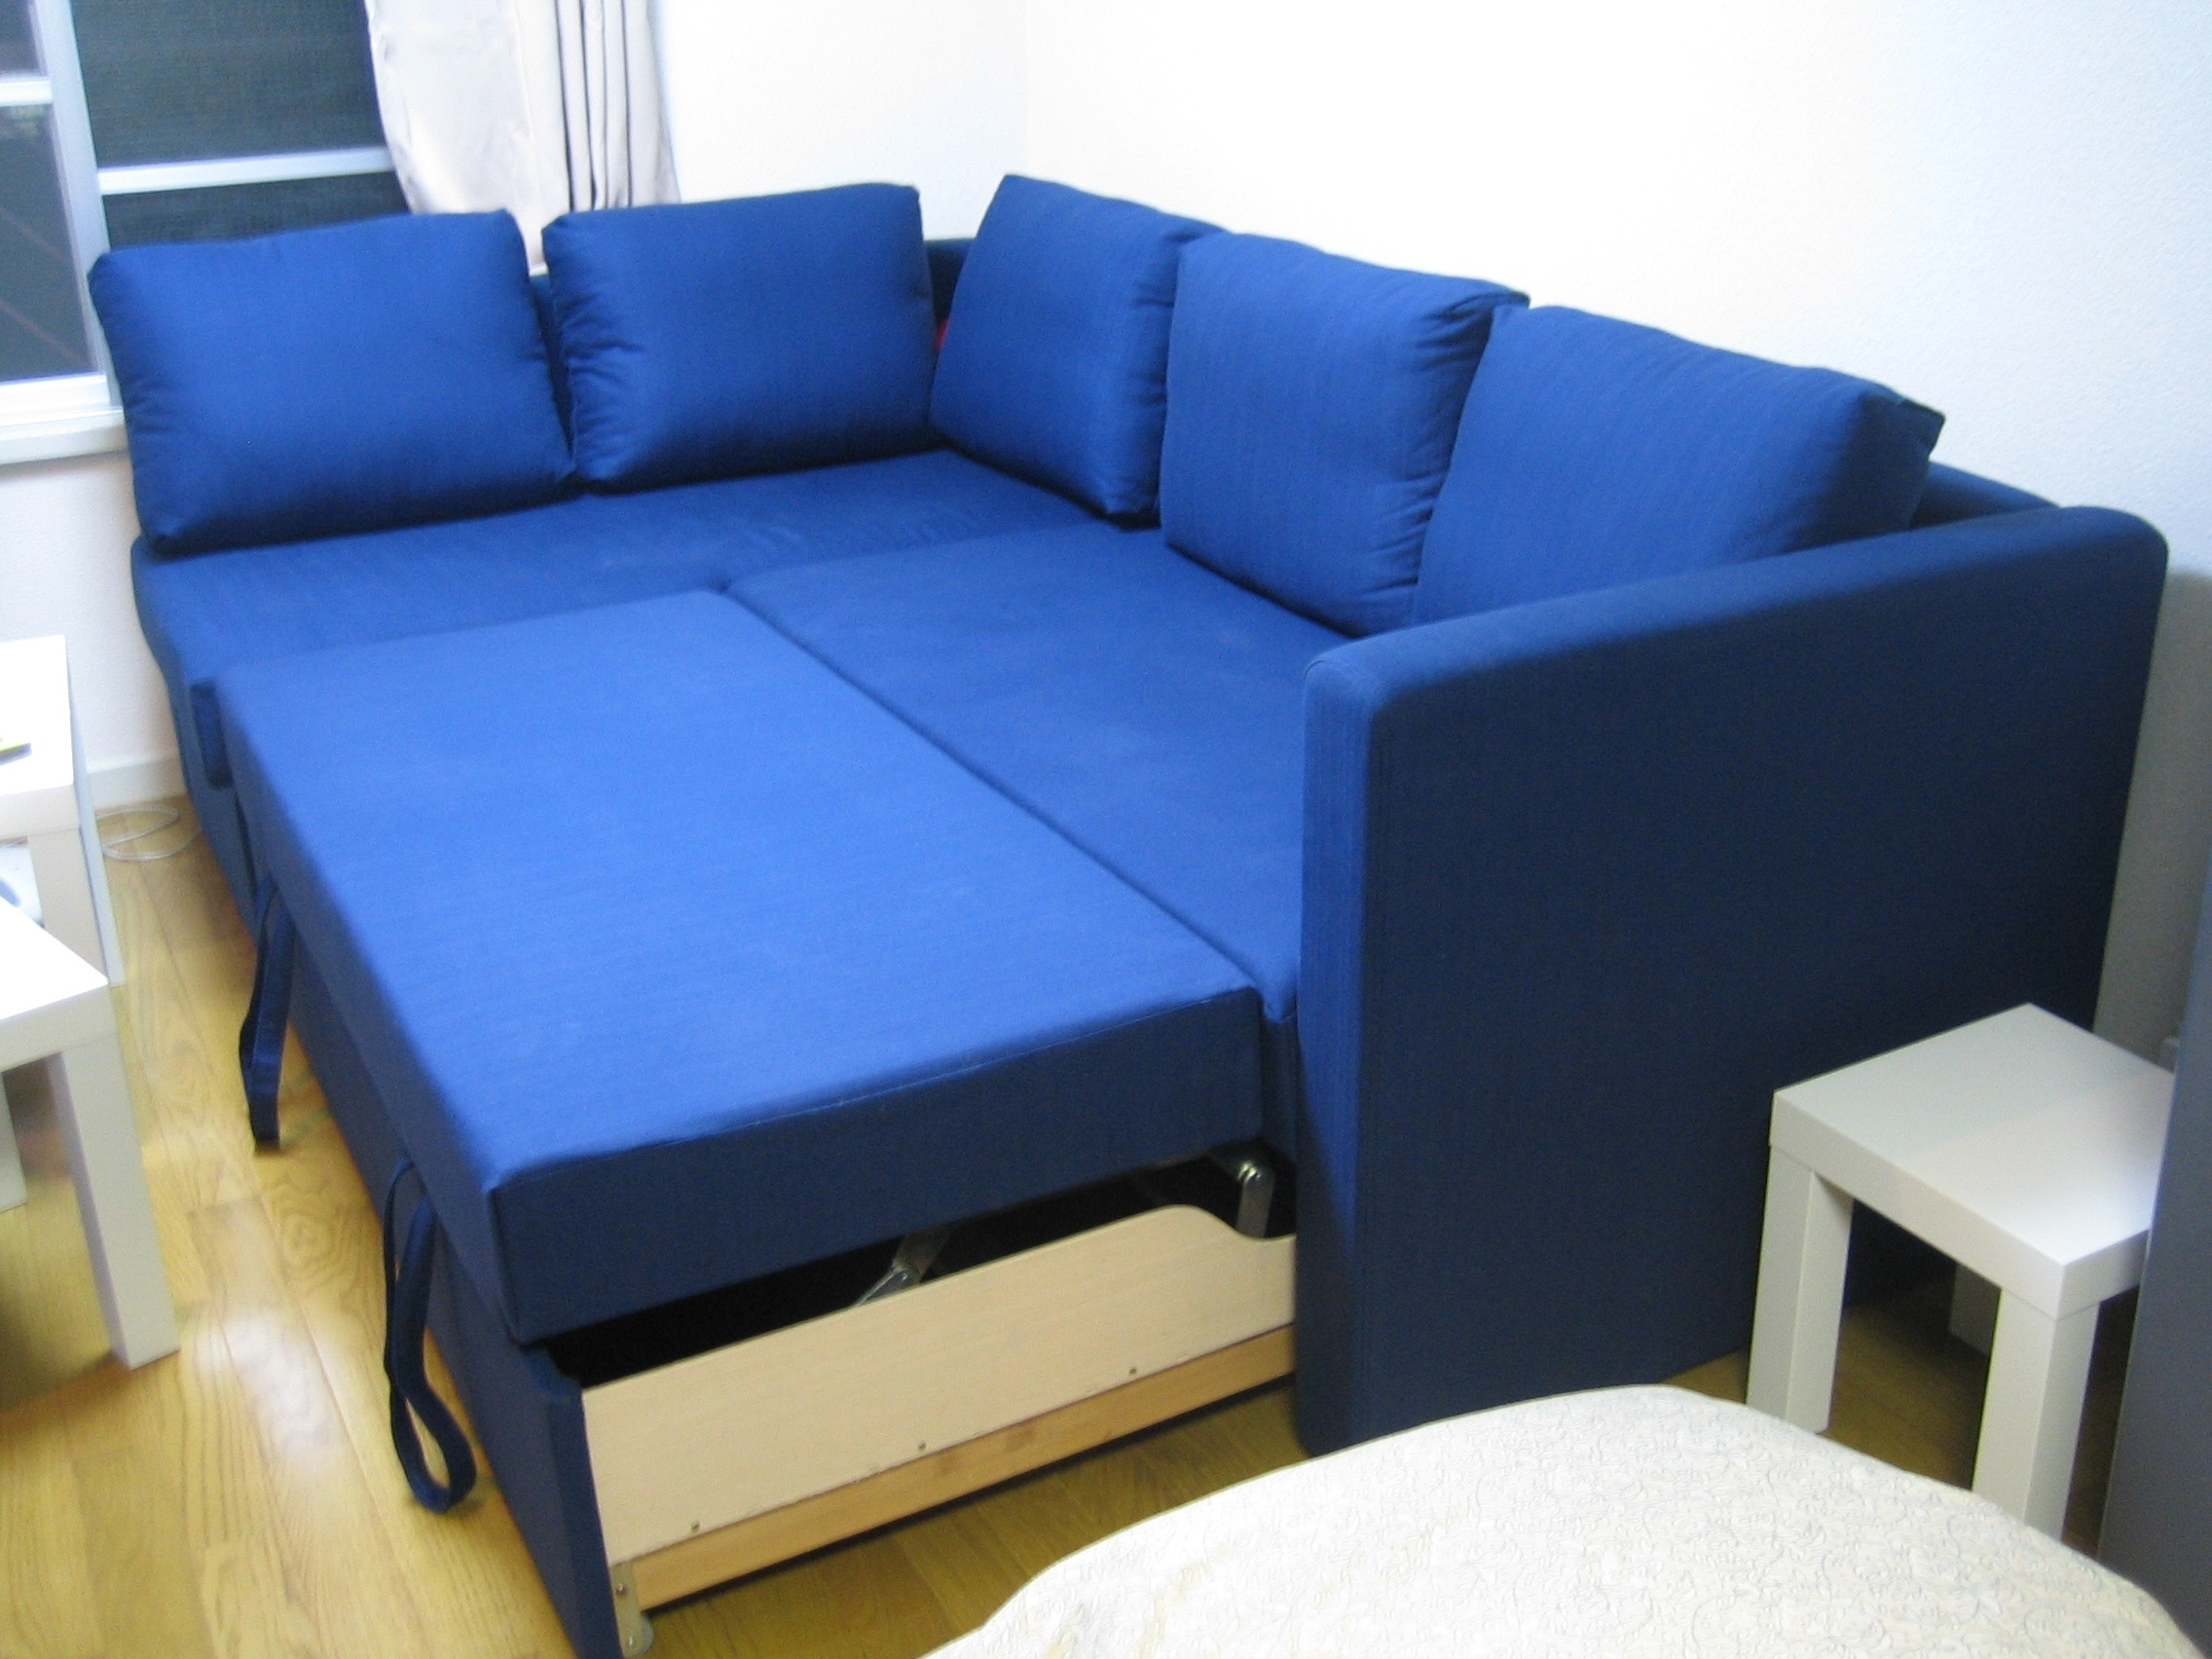 Sectional Sofa That Turns Into A Bed • Sofa Bed With Regard To Sectional Sofas That Turn Into Beds (Image 7 of 10)